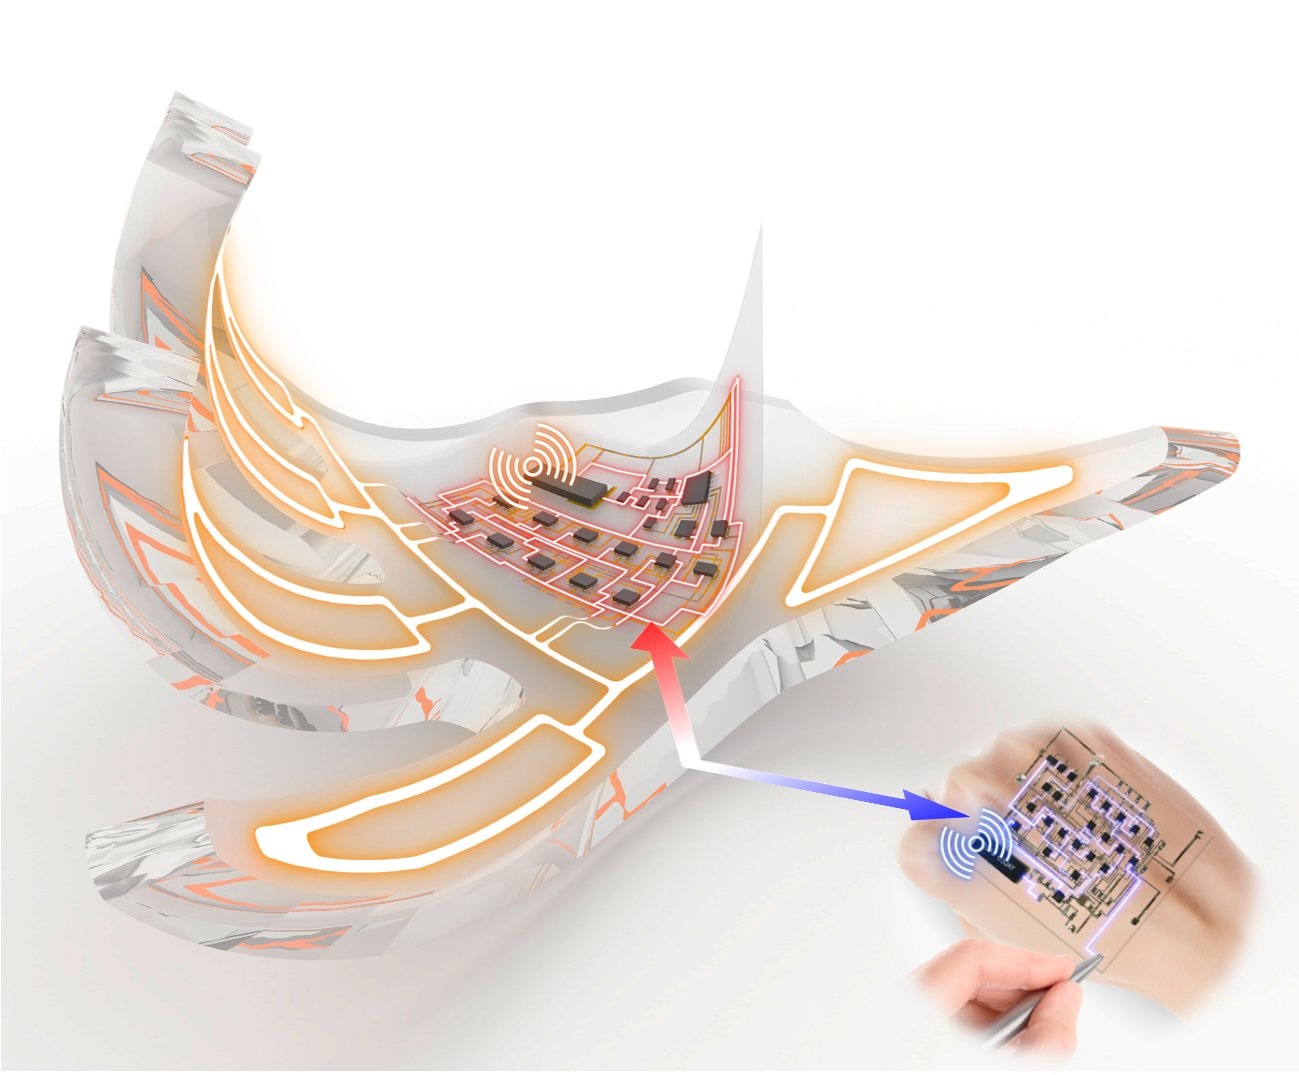 Researchers develop electronic skins that wirelessly ...